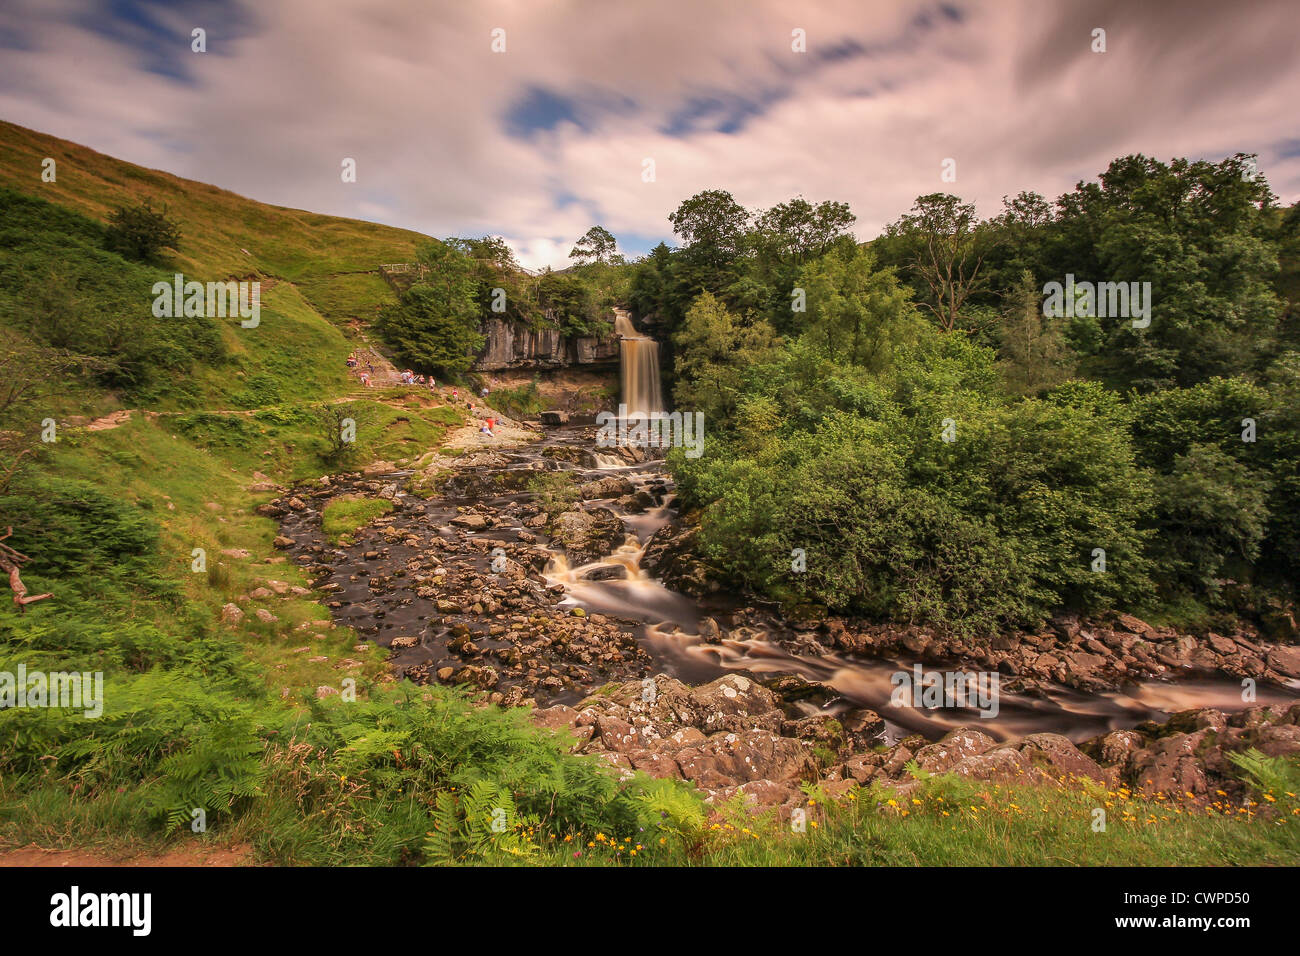 Thornton Force, one of the waterfalls on the Ingleton waterfalls trail. - Stock Image